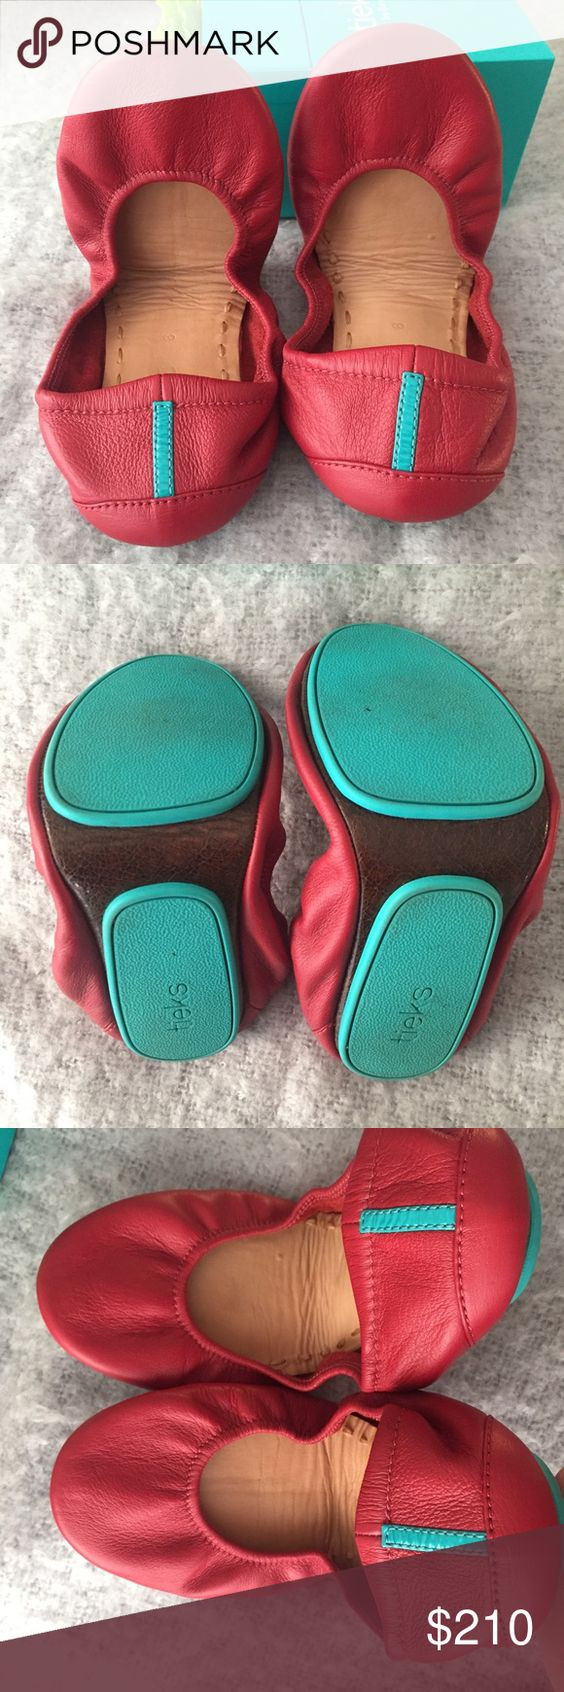 Tieks Cardinal Red size 8 Tieks! Worn once. Size 8. No flaws. Didn't fit me properly. Just recouping my funds. Cross listed!! Tieks Shoes Flats & Loafers